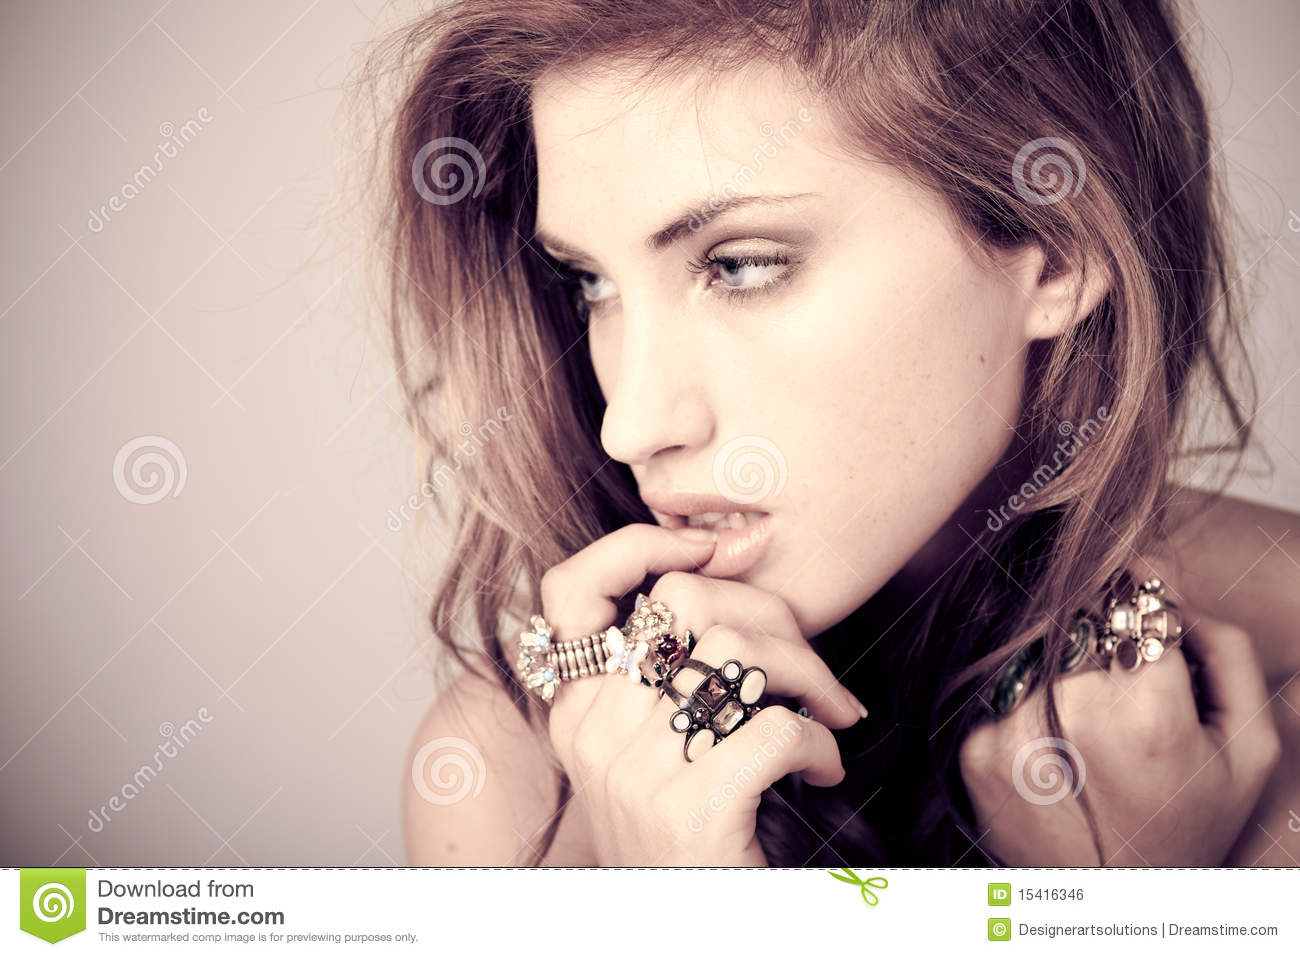 Beautiful Young Woman with Rings